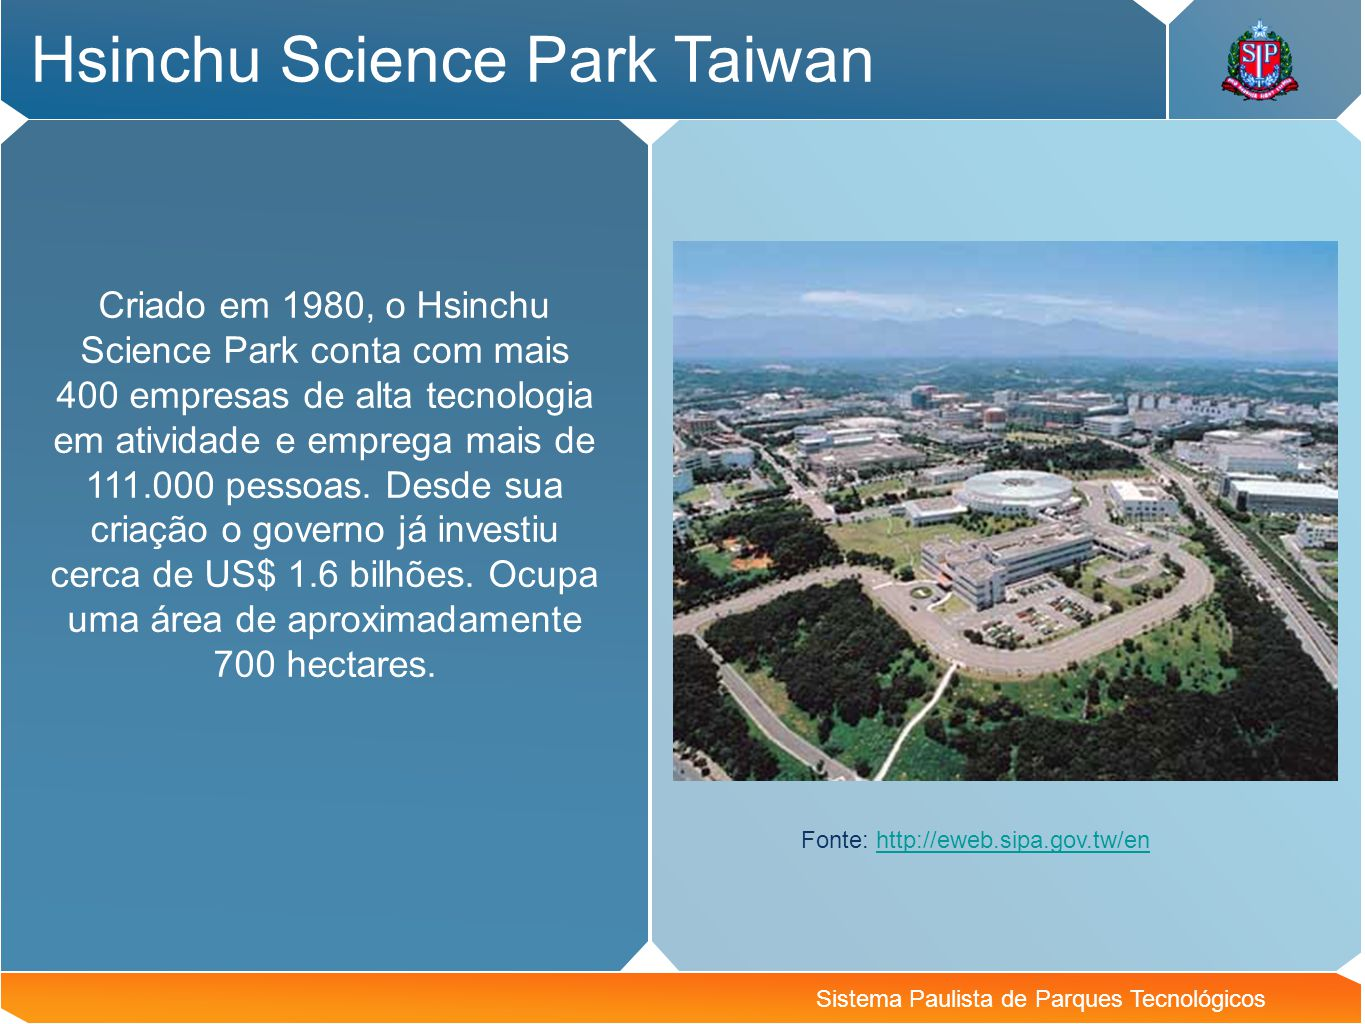 Hsinchu Science Park Taiwan